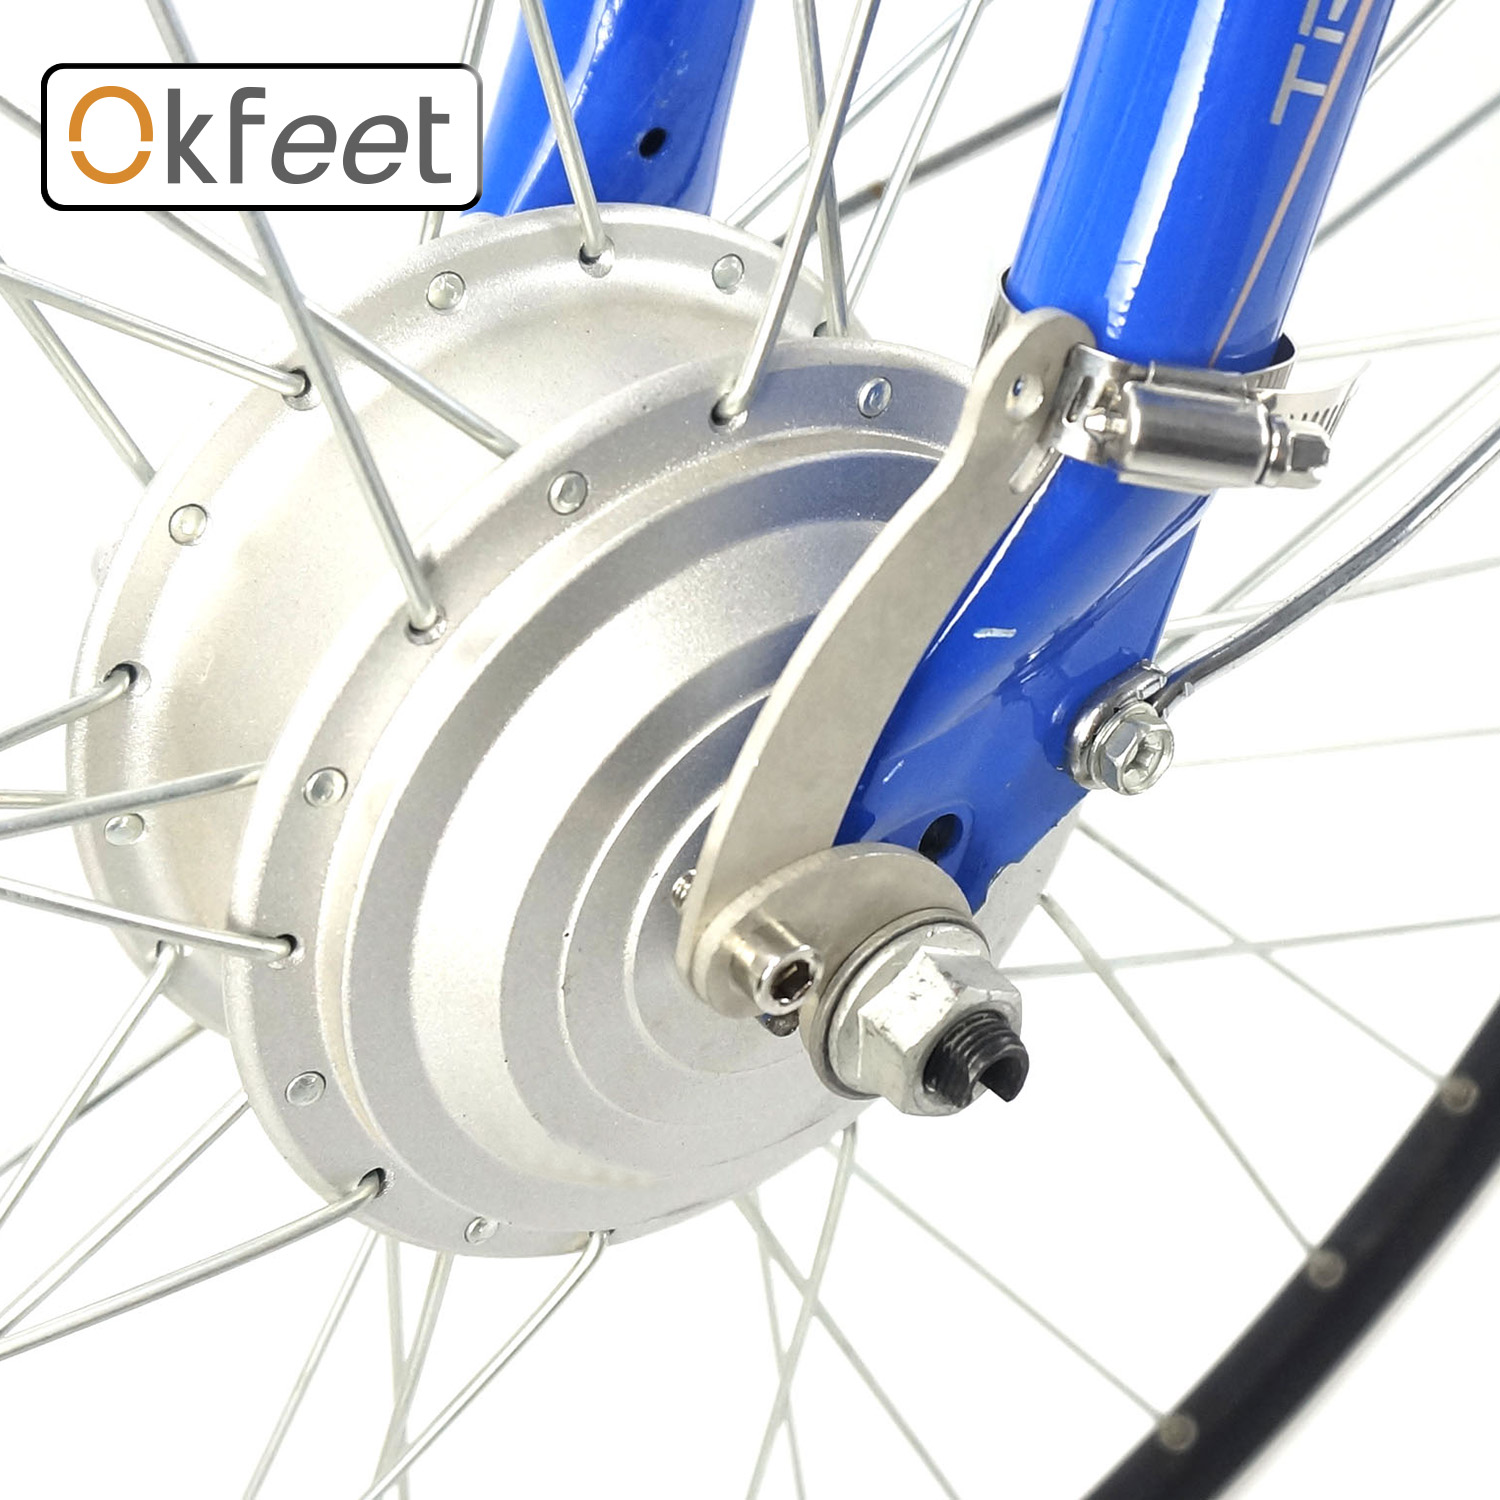 Okfeet Bike-Conversion-Kit Part-Accessories Motor-Torque V-Disc-Brake Electric-Bicycle title=